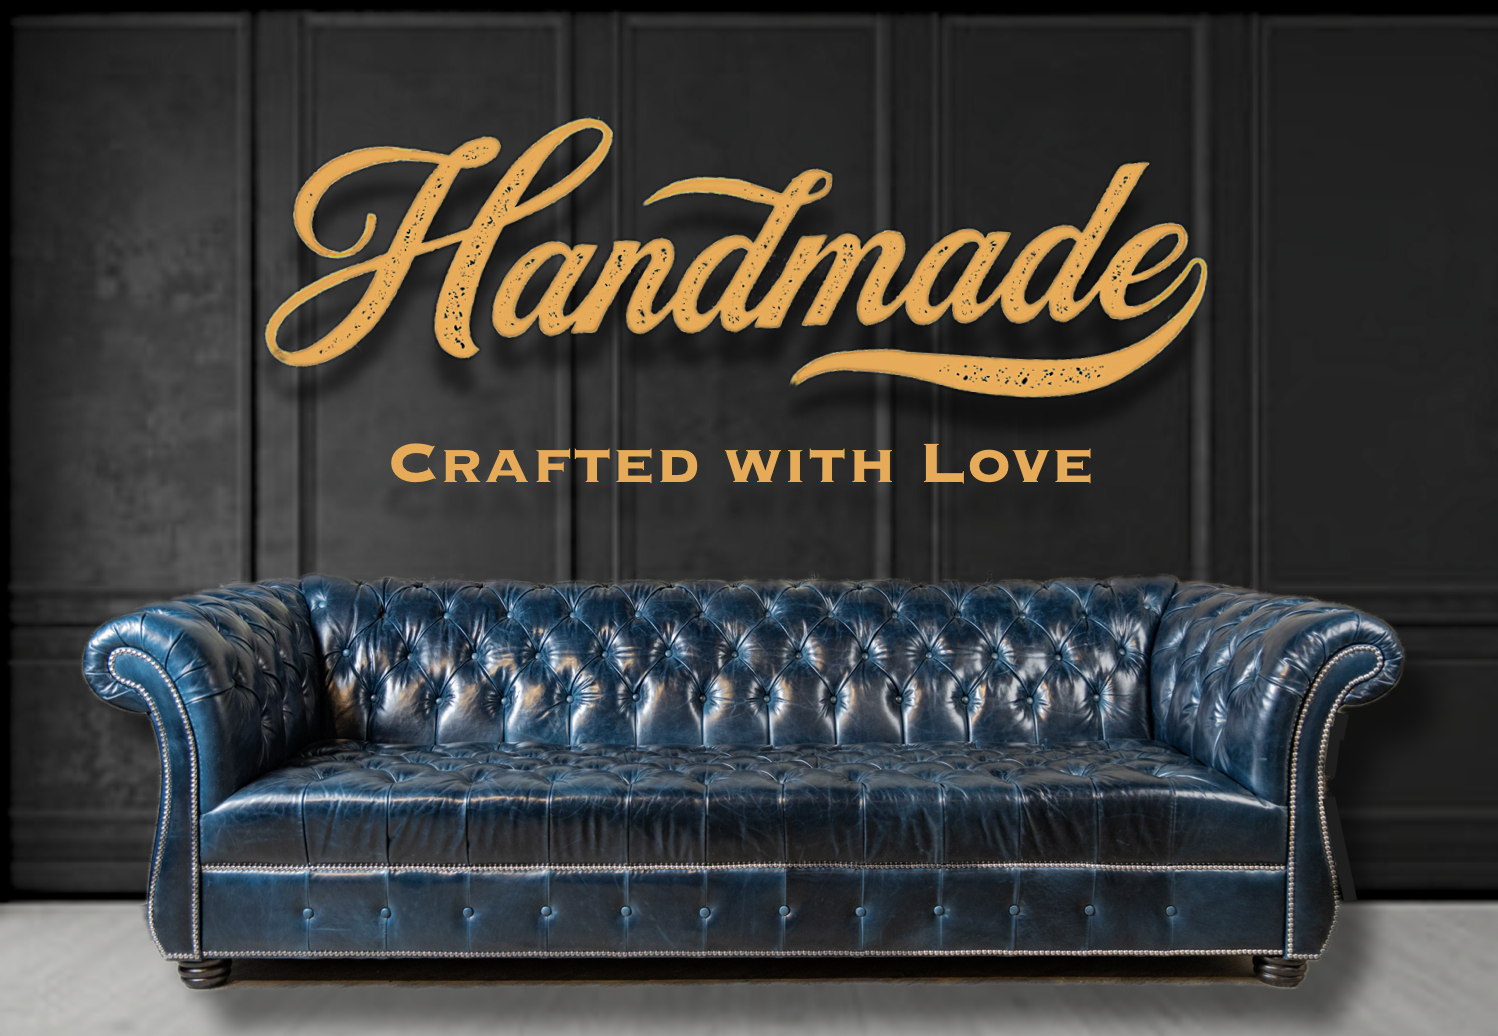 Leather Sofas Made In Canada In 2020 Custom Leather Sofa Custom Leather Genuine Leather Furniture